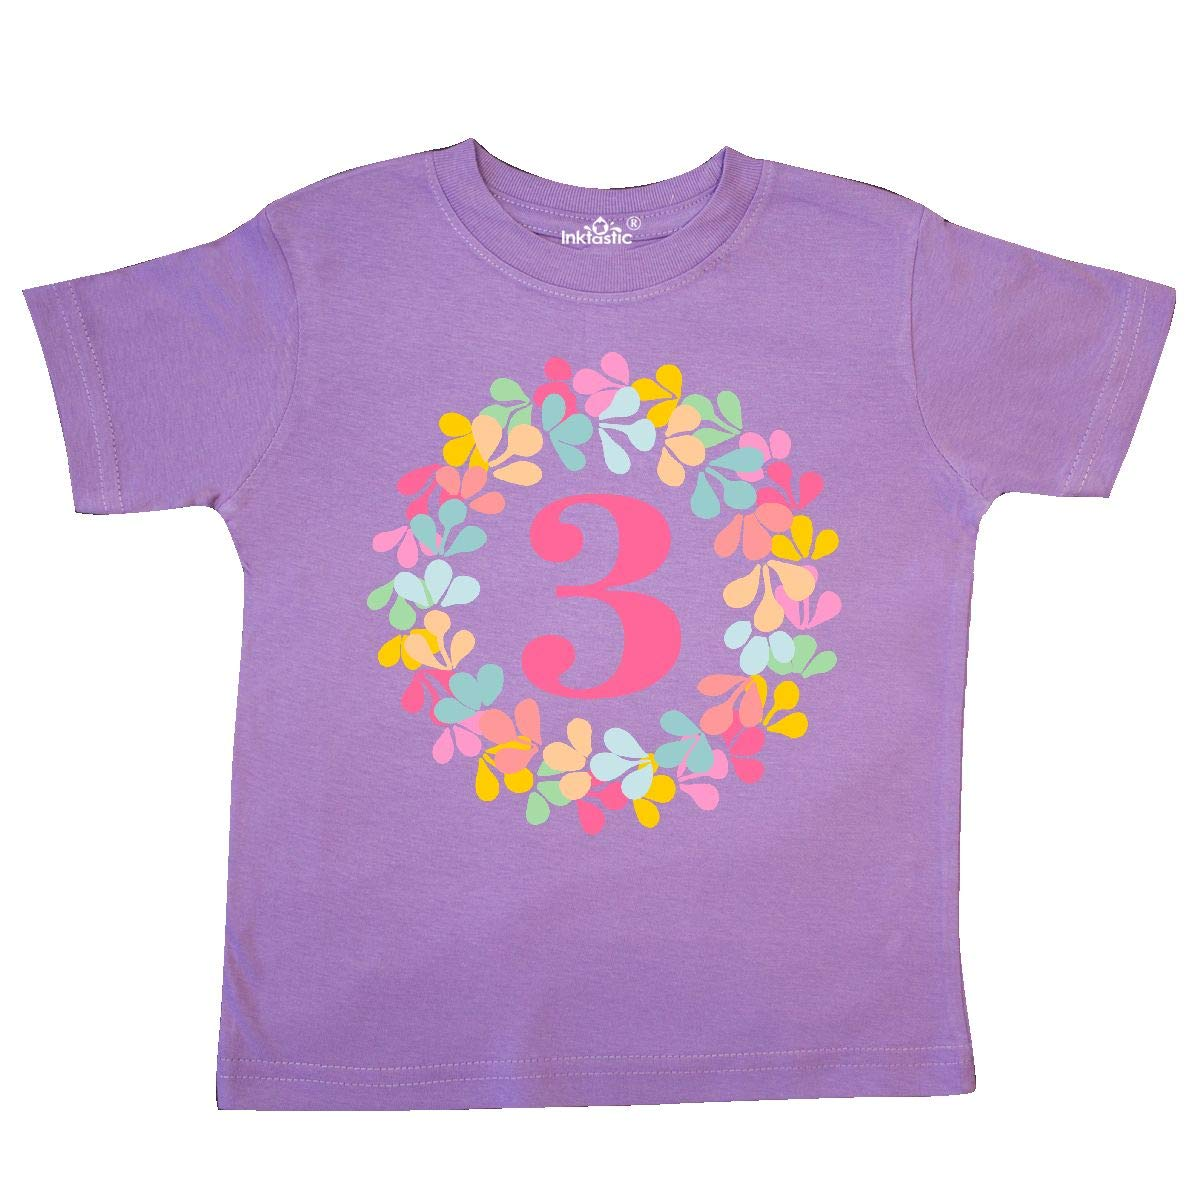 inktastic 3rd Birthday Flower Wreath 3 Year Old Girl Toddler T-Shirt